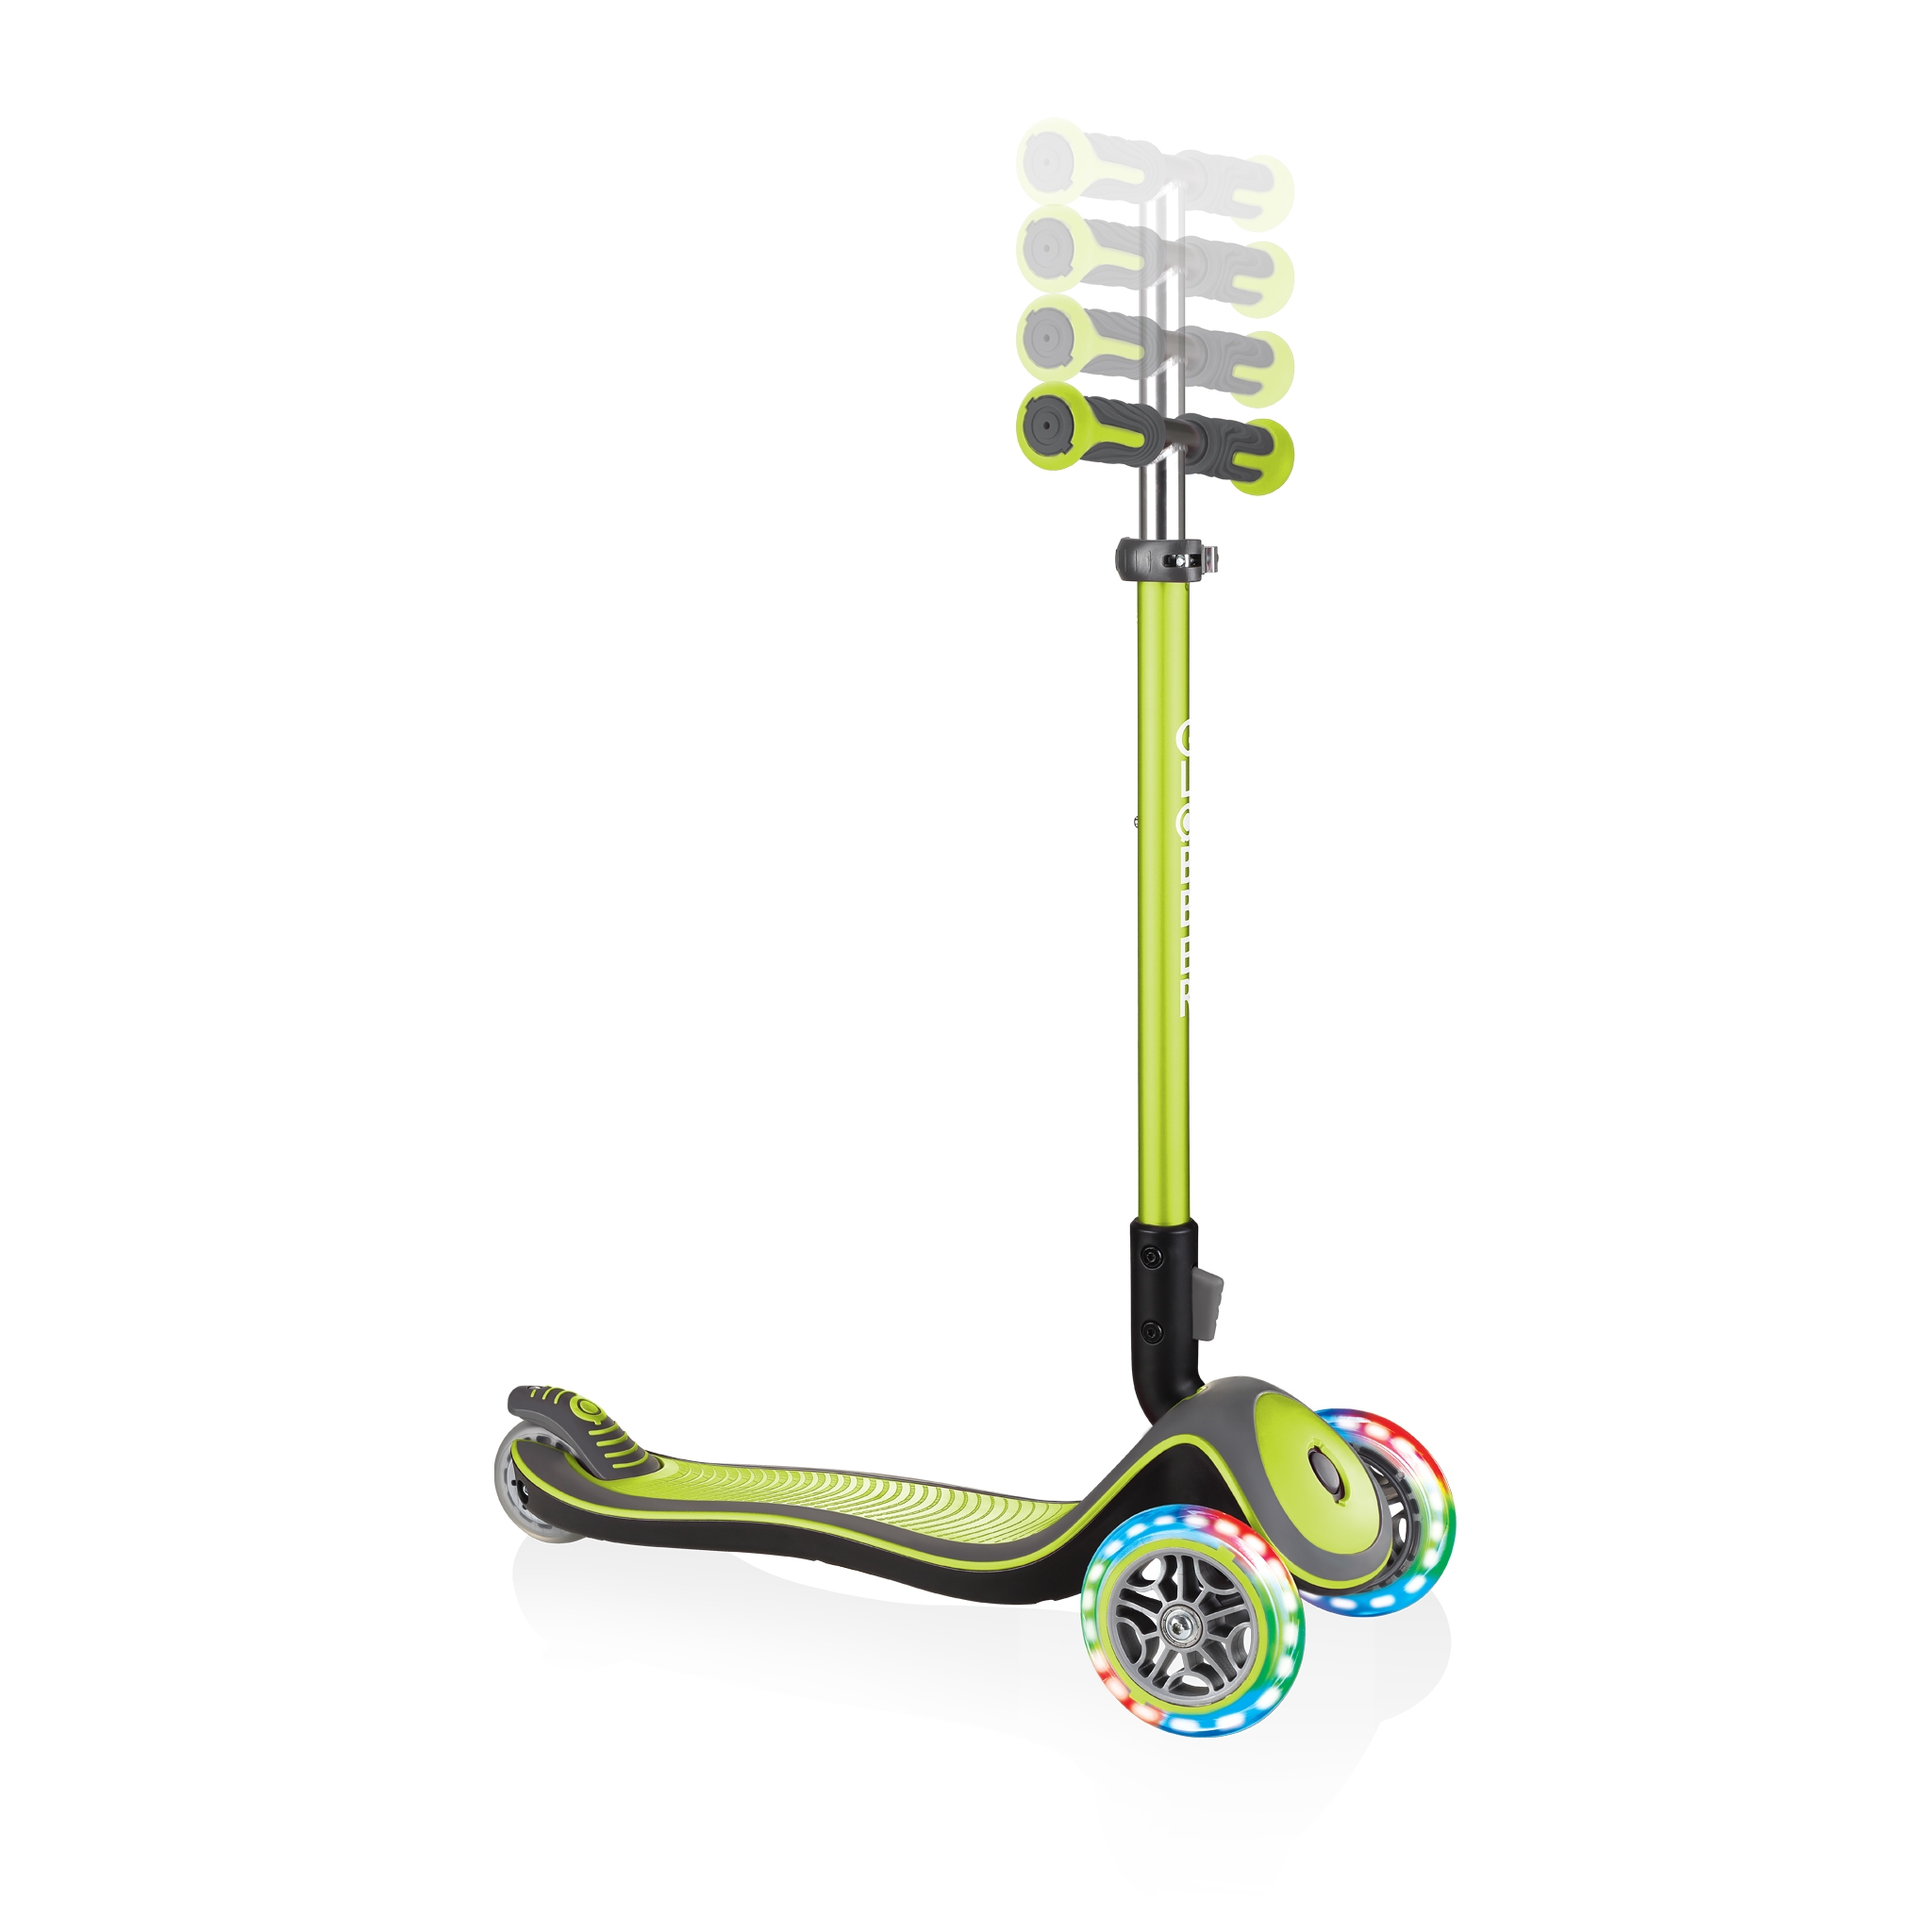 Globber-ELITE-DELUXE-LIGHTS-3-wheel-adjustable-scooter-for-kids-with-light-up-scooter-wheels-lime-green